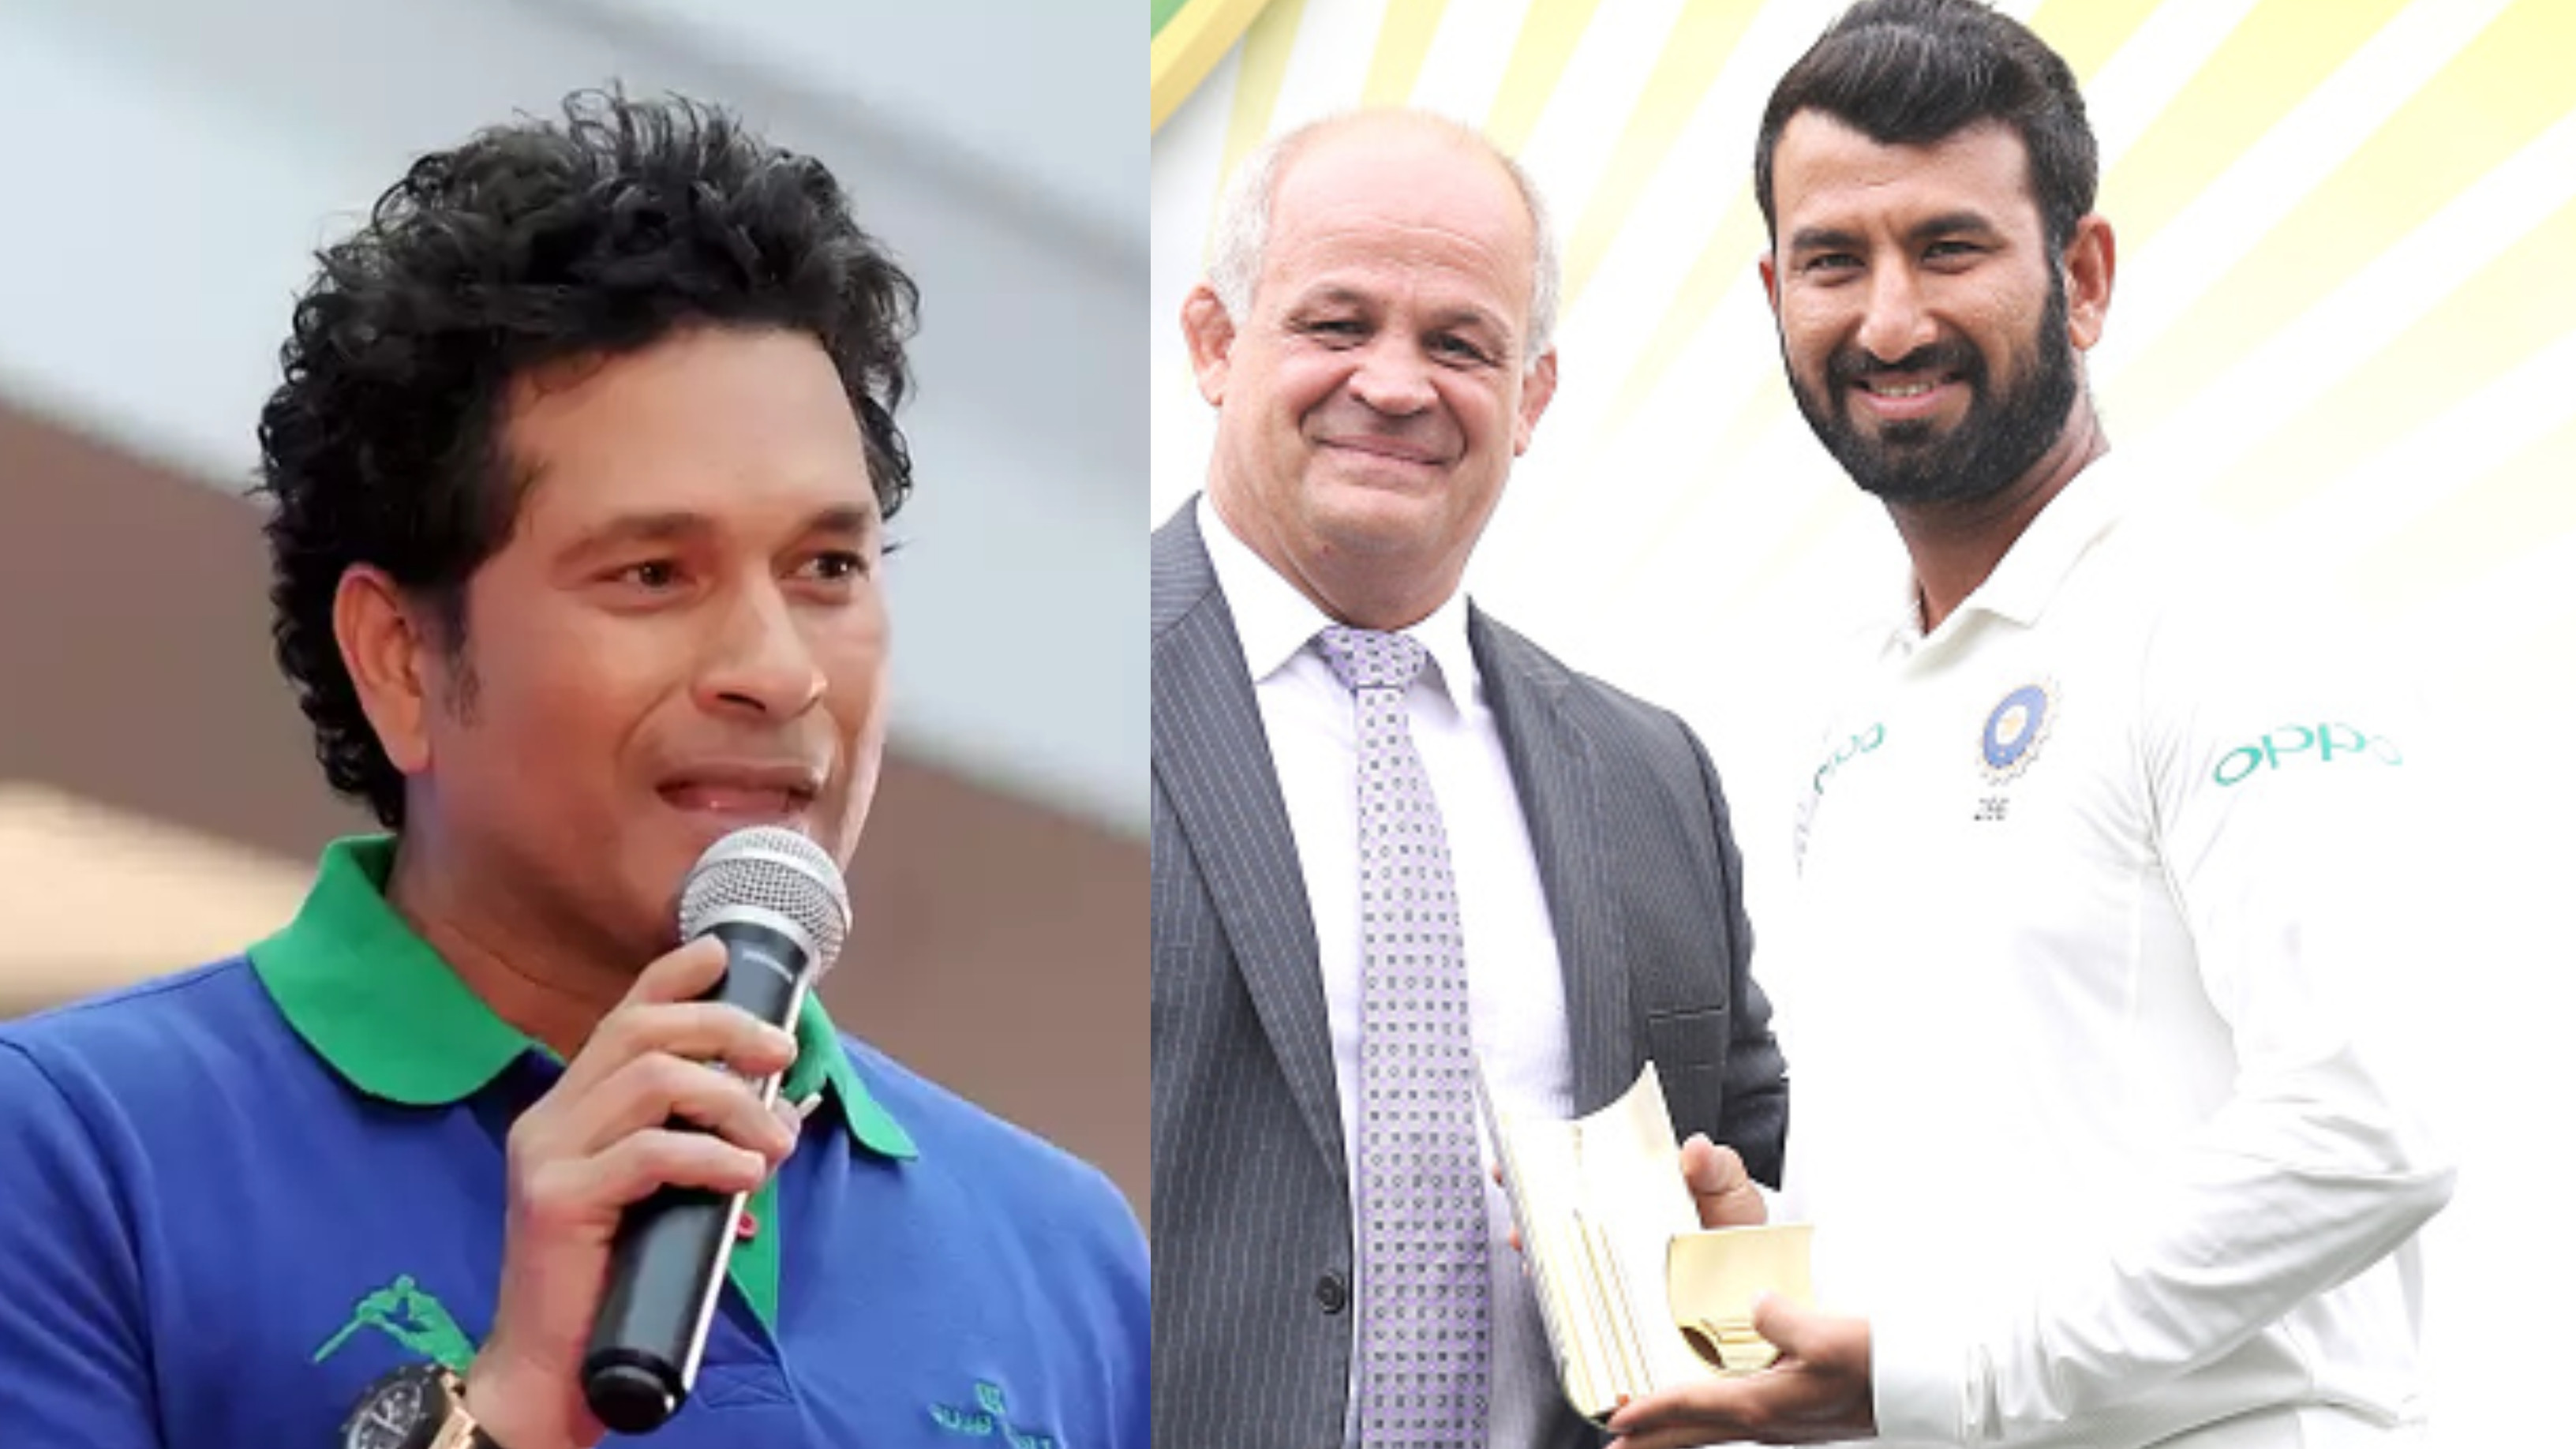 AUS v IND 2018-19: Sachin Tendulkar hails Cheteshwar Pujara's contribution in India's historic success in Australia